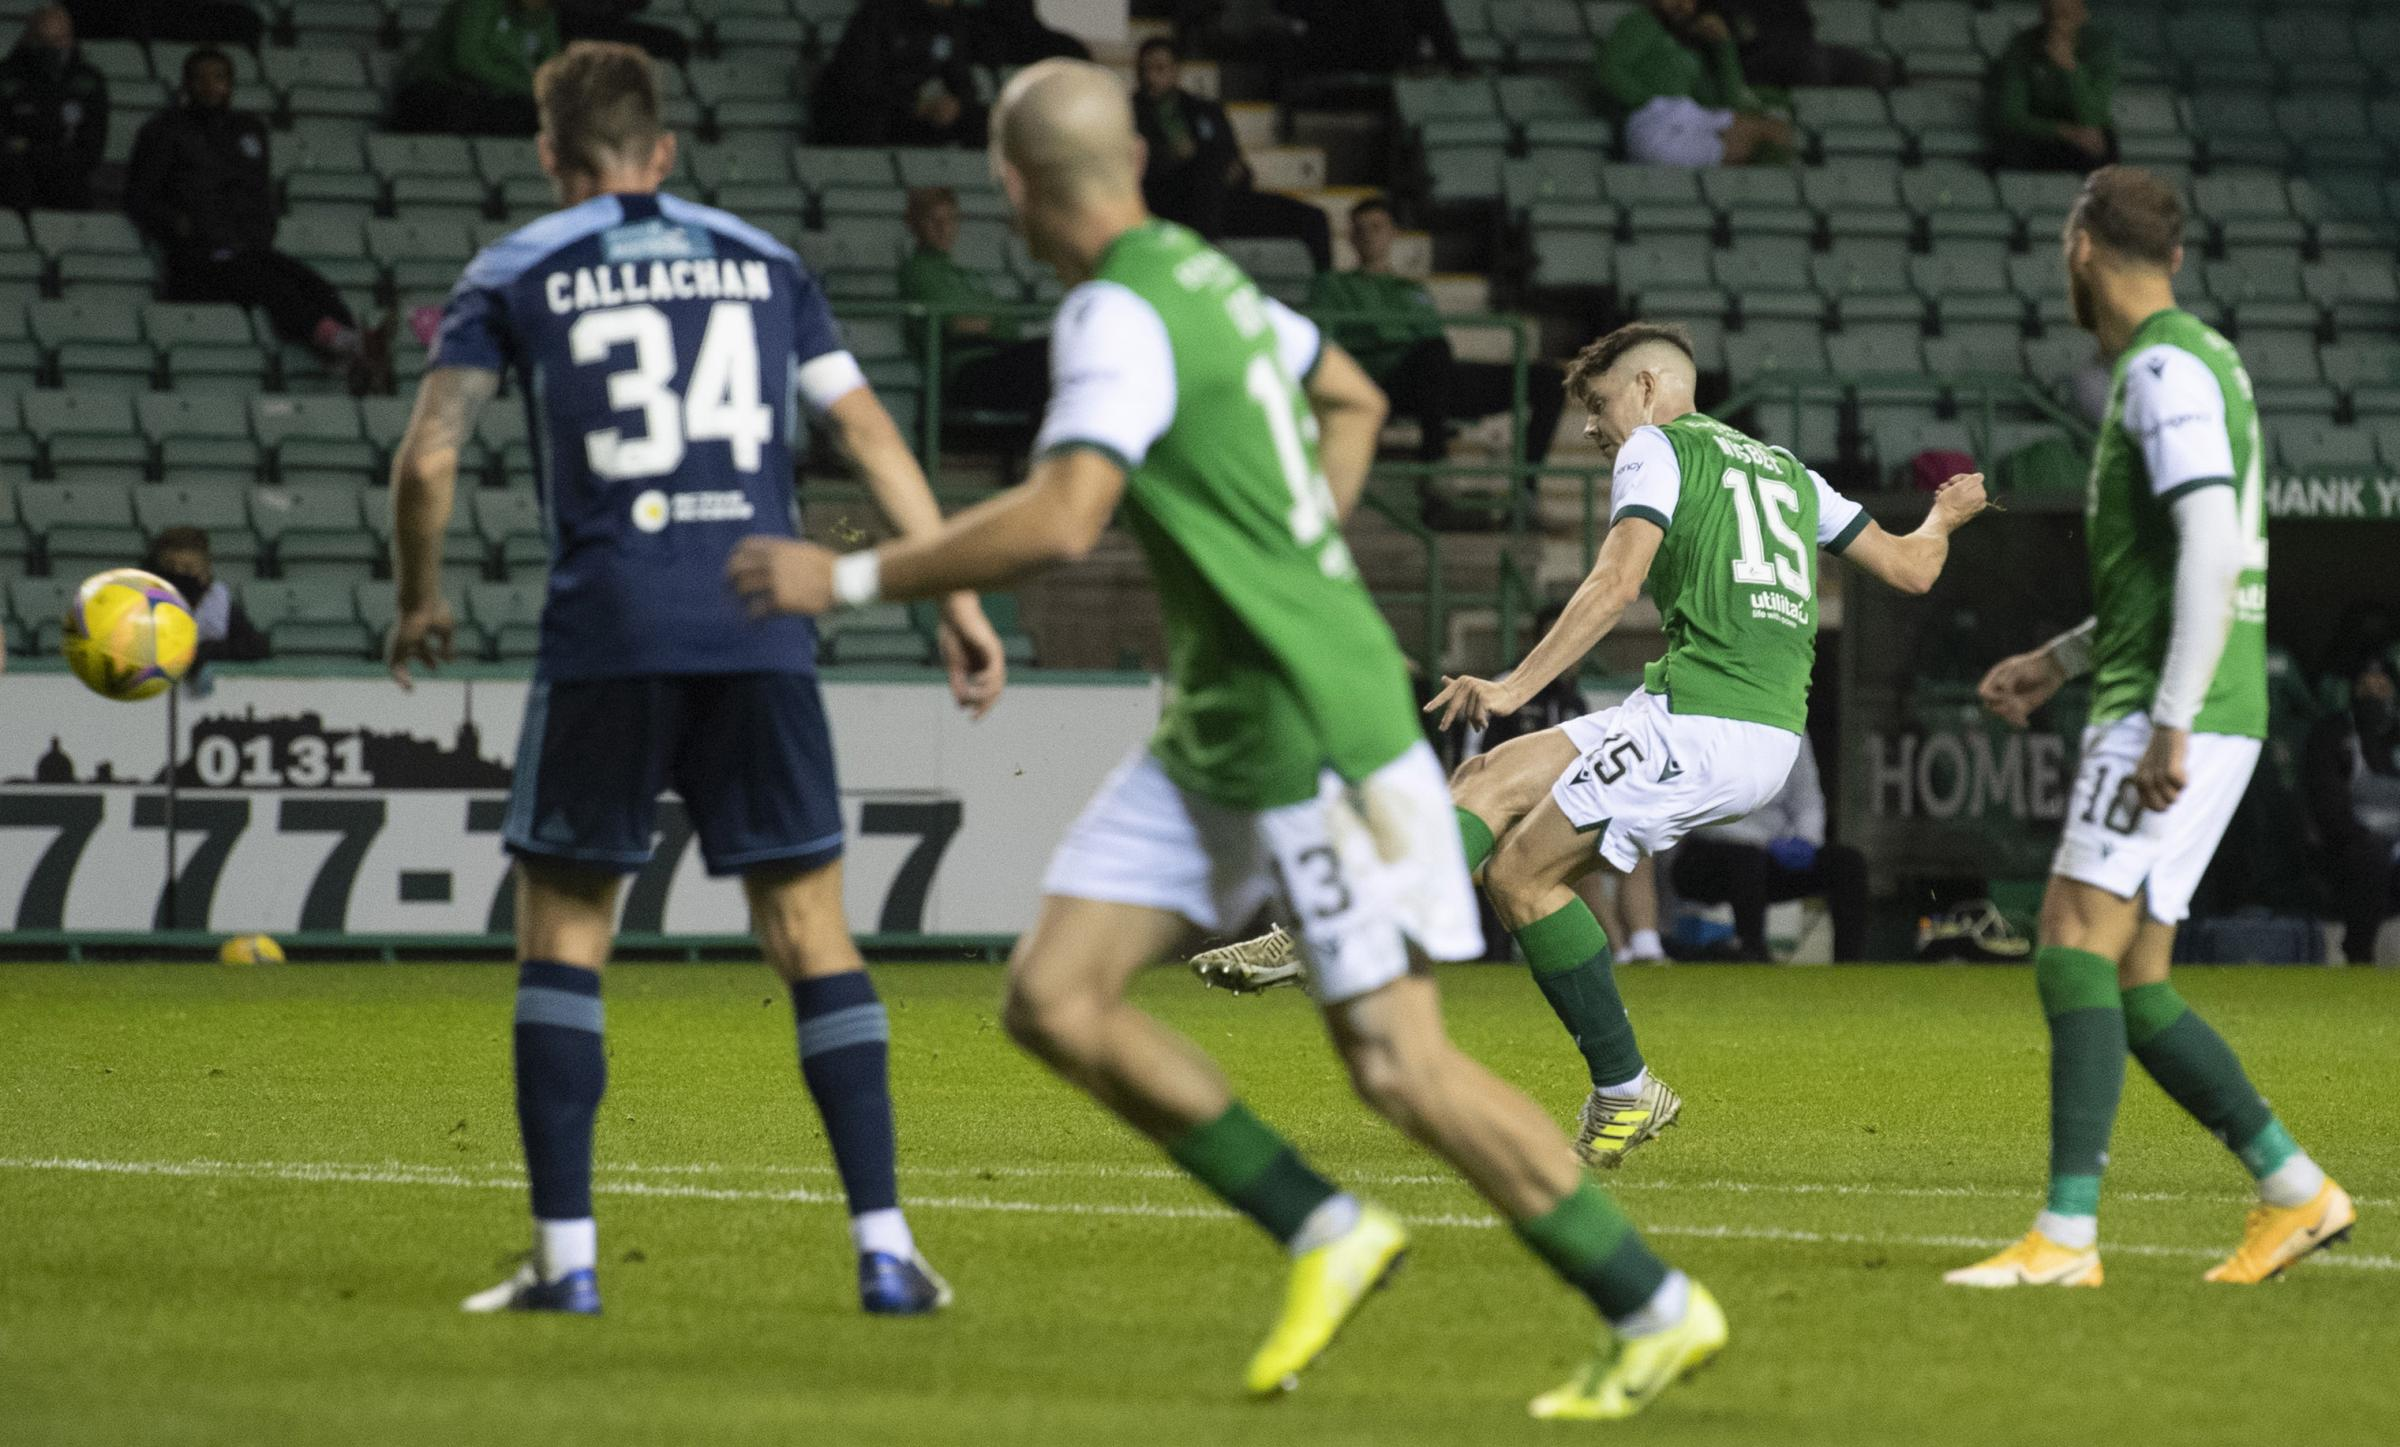 Hibernian 3-2 Hamilton: Nisbet at the double as Hibs survive late scare